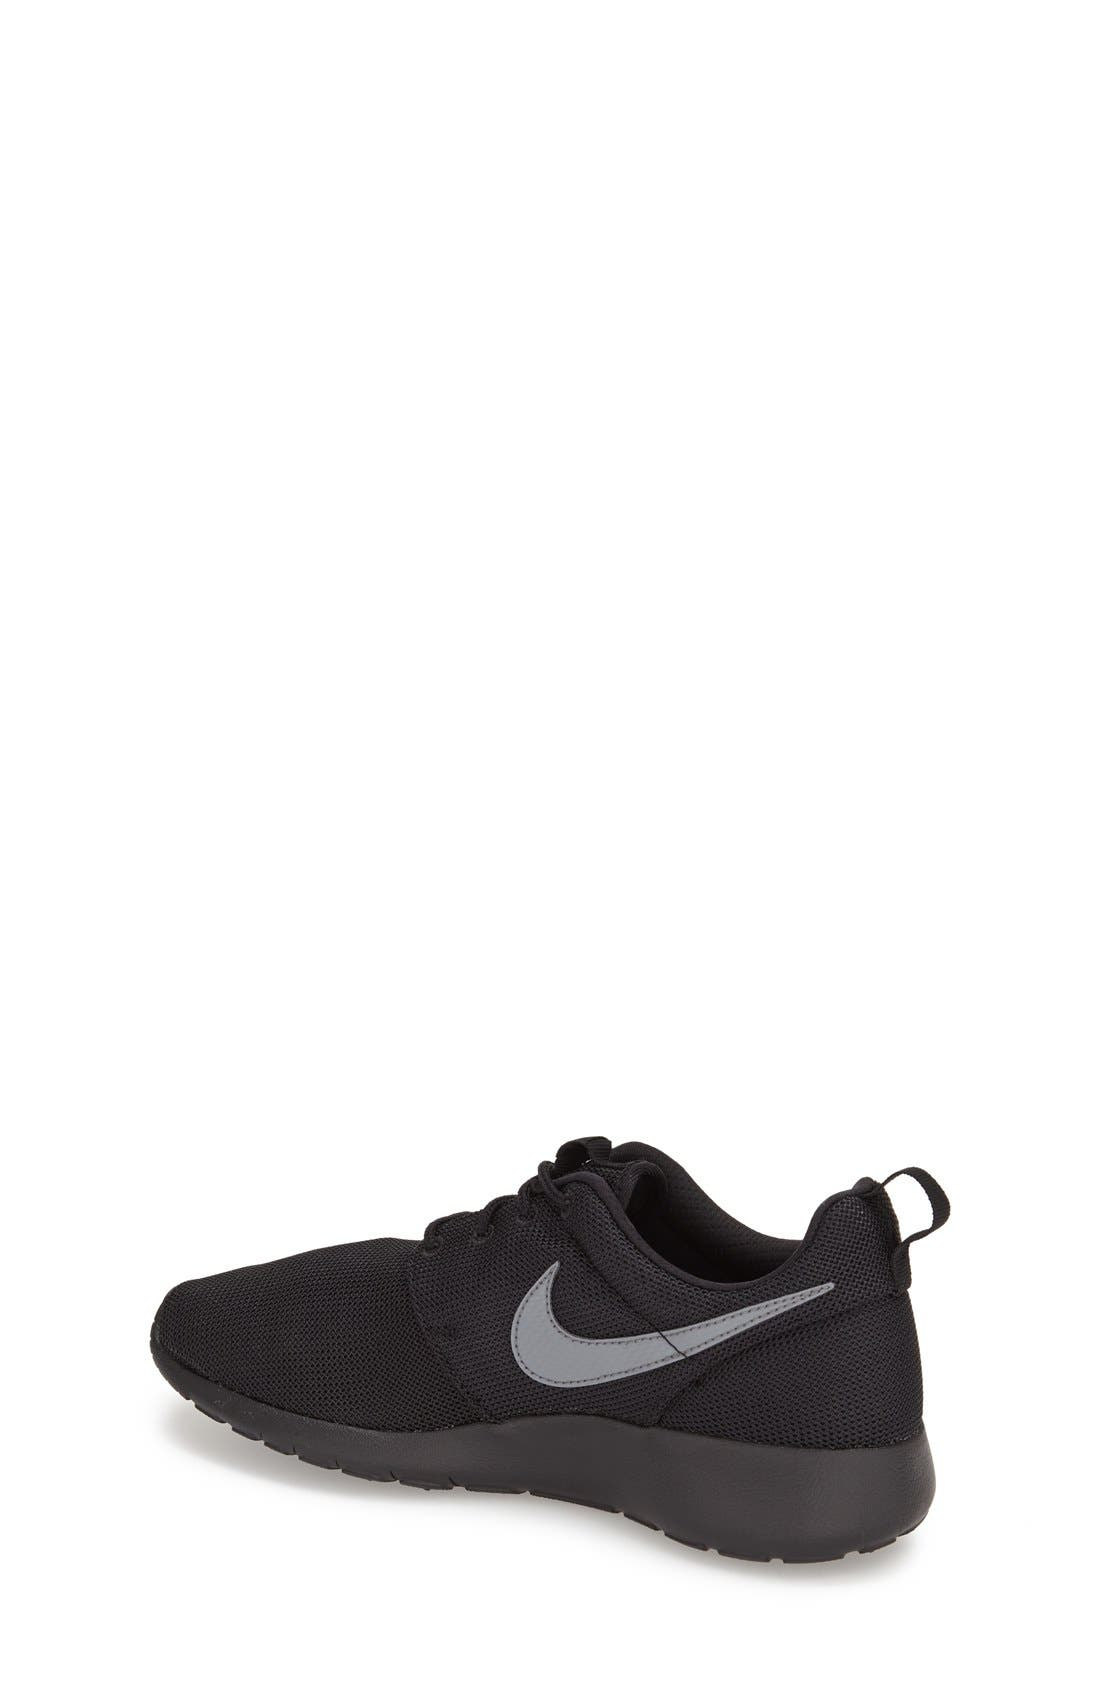 'Roshe Run' Sneaker,                             Alternate thumbnail 109, color,